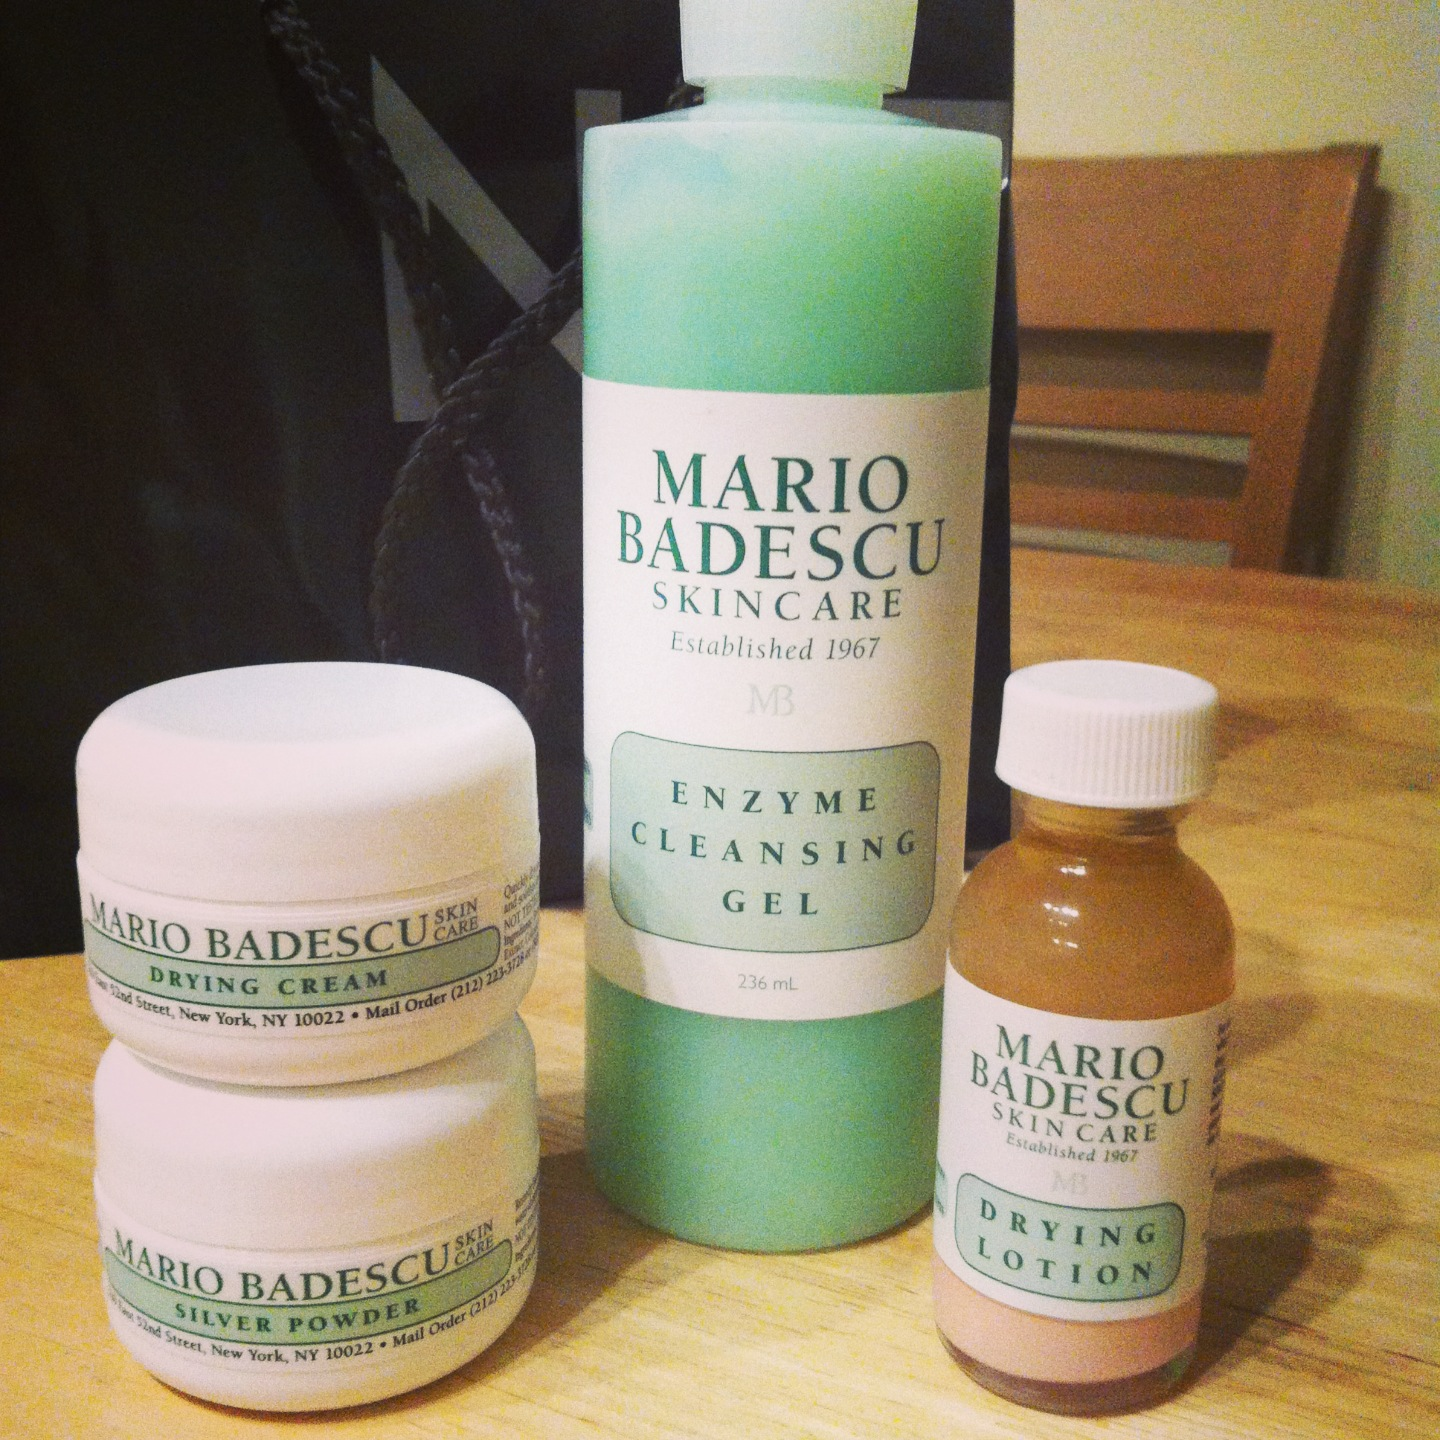 From our iconic Drying Lotion to the best-selling Enzyme Cleansing Gel, these are Best Sellers | Mario Badescu.